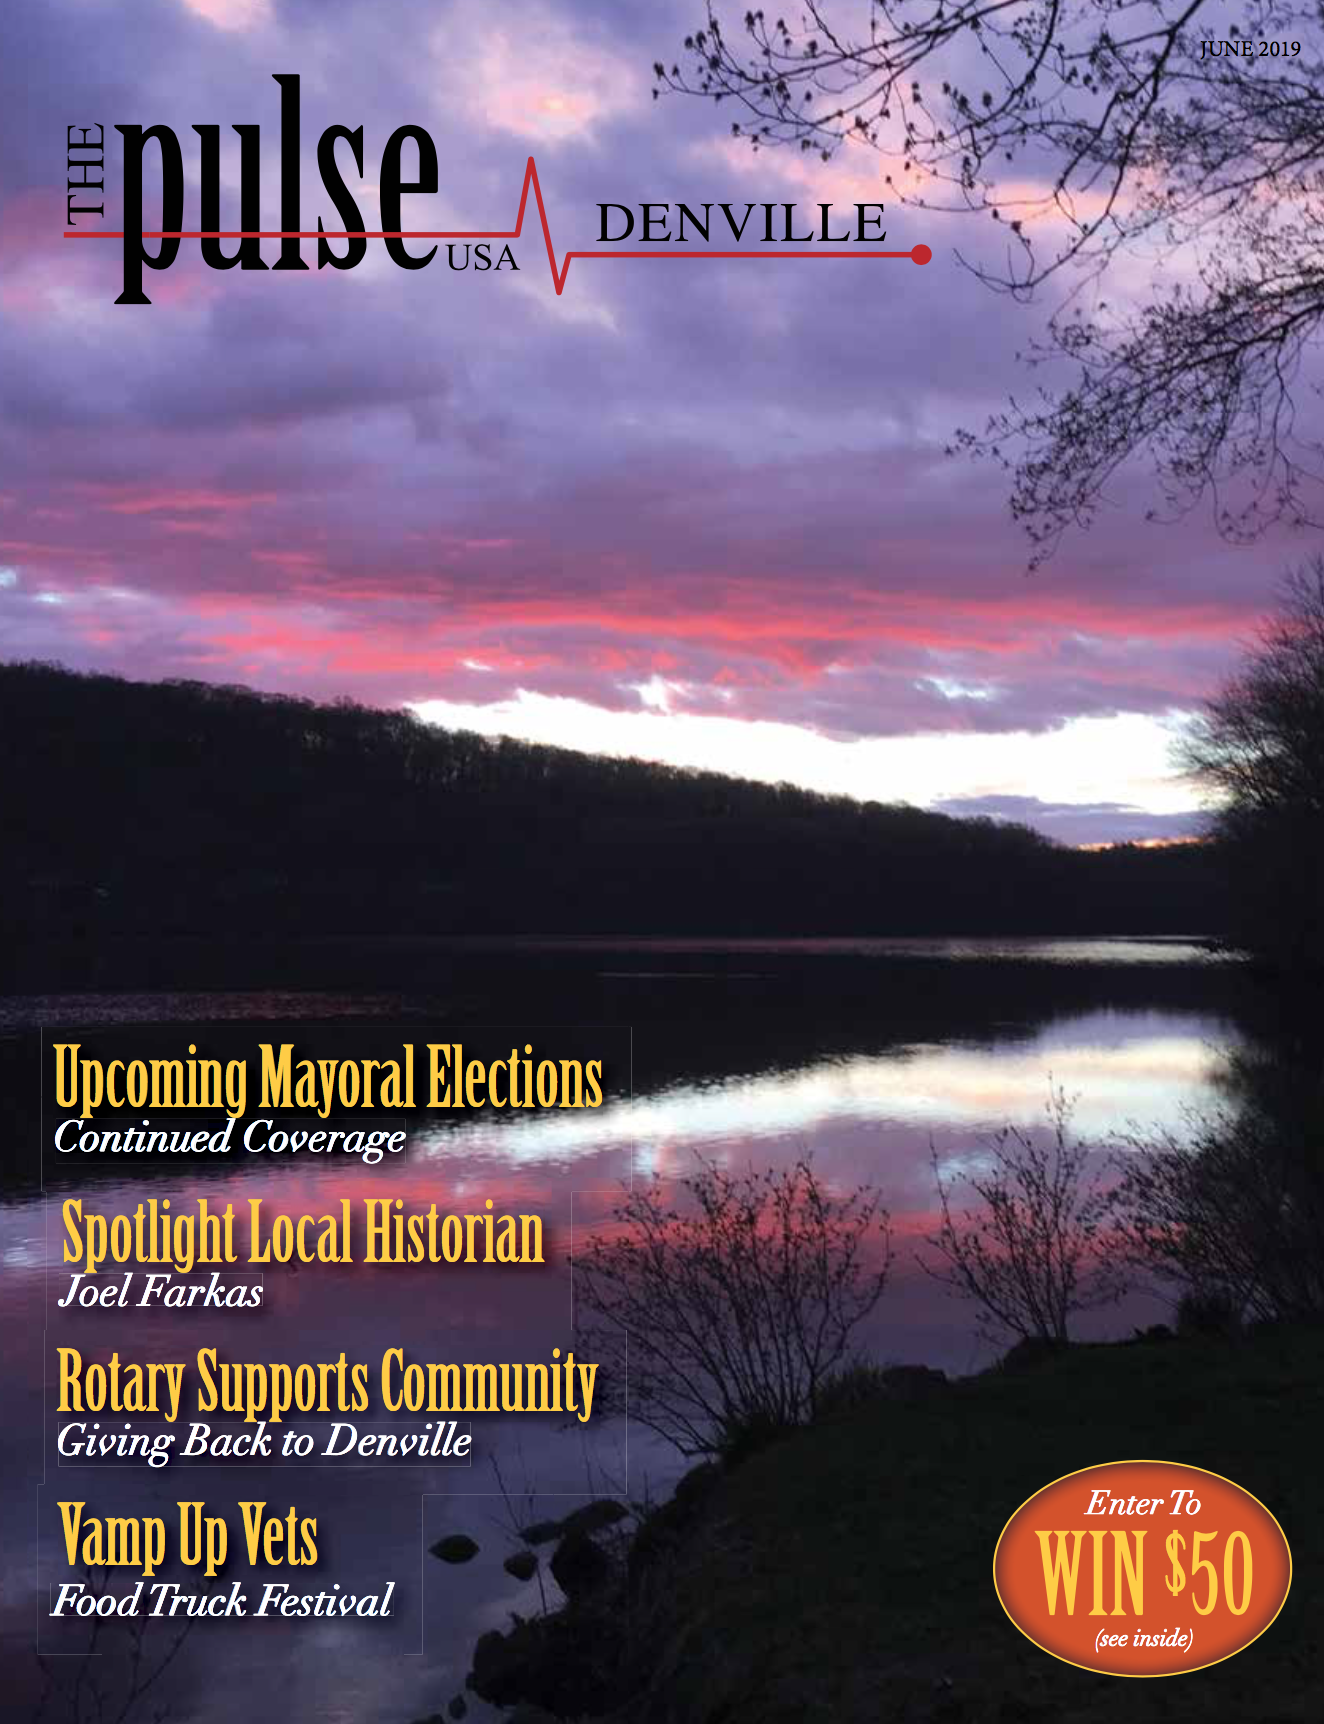 The Pulse USA Denville Magazine